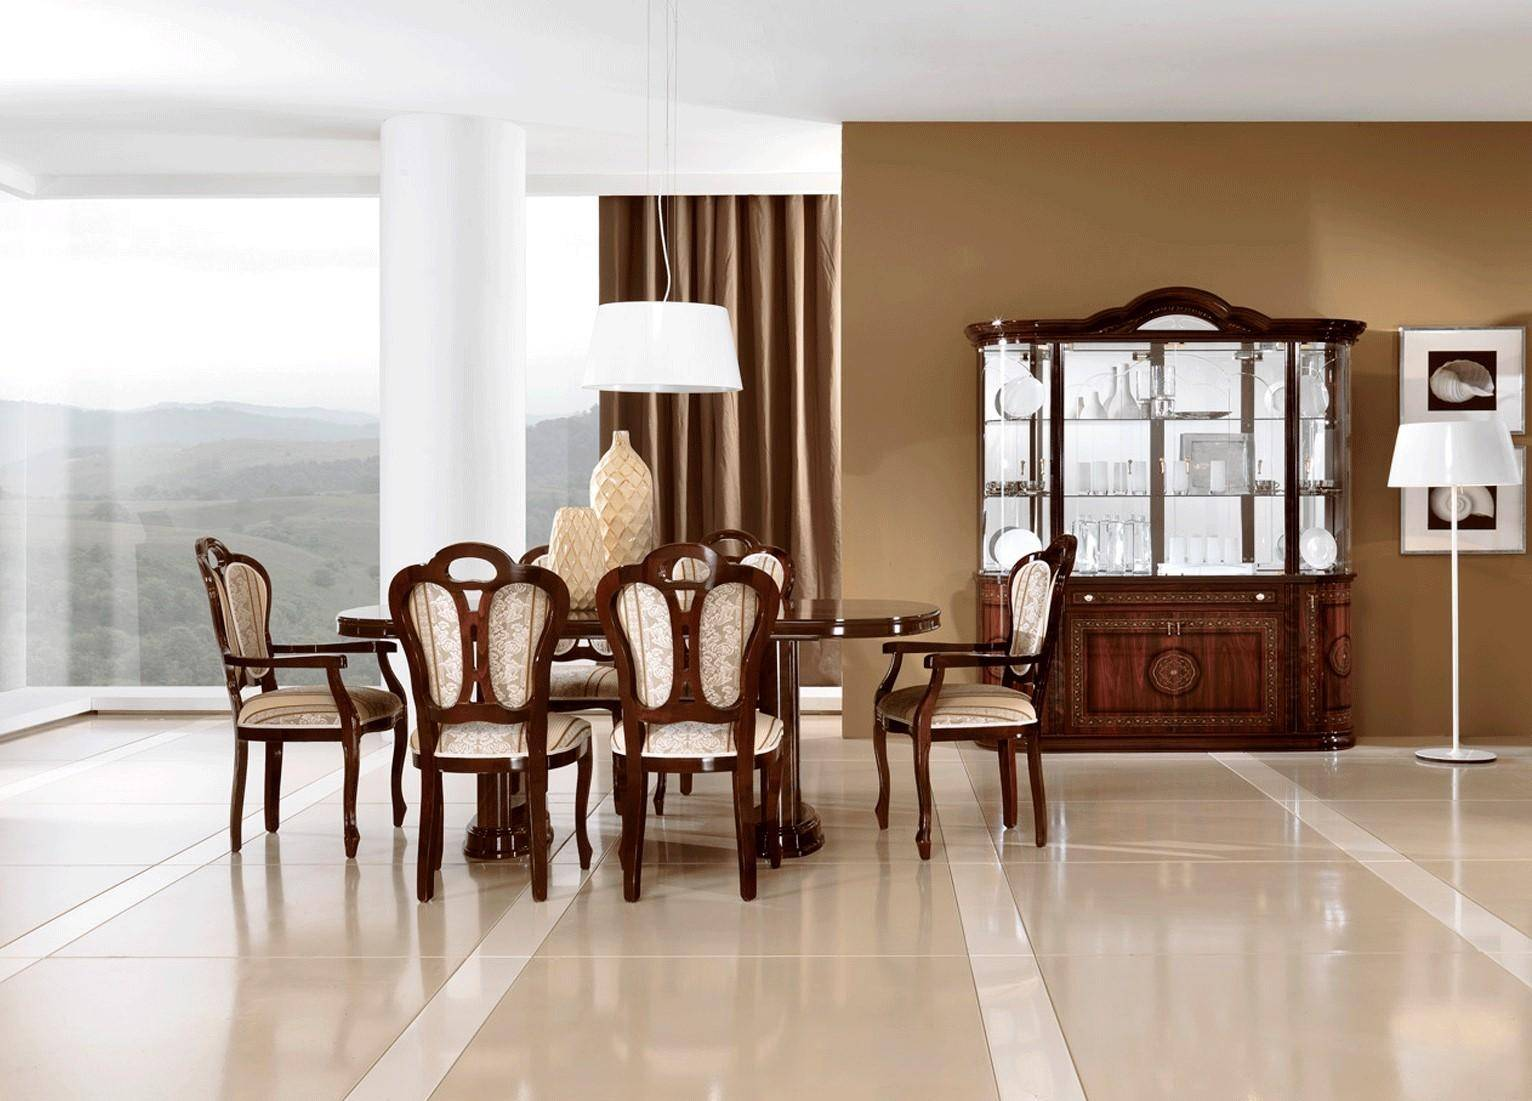 Buy Esf Pamela Dining Table Set 8 Pcs In Beige Brown Mahogany Fabric Online